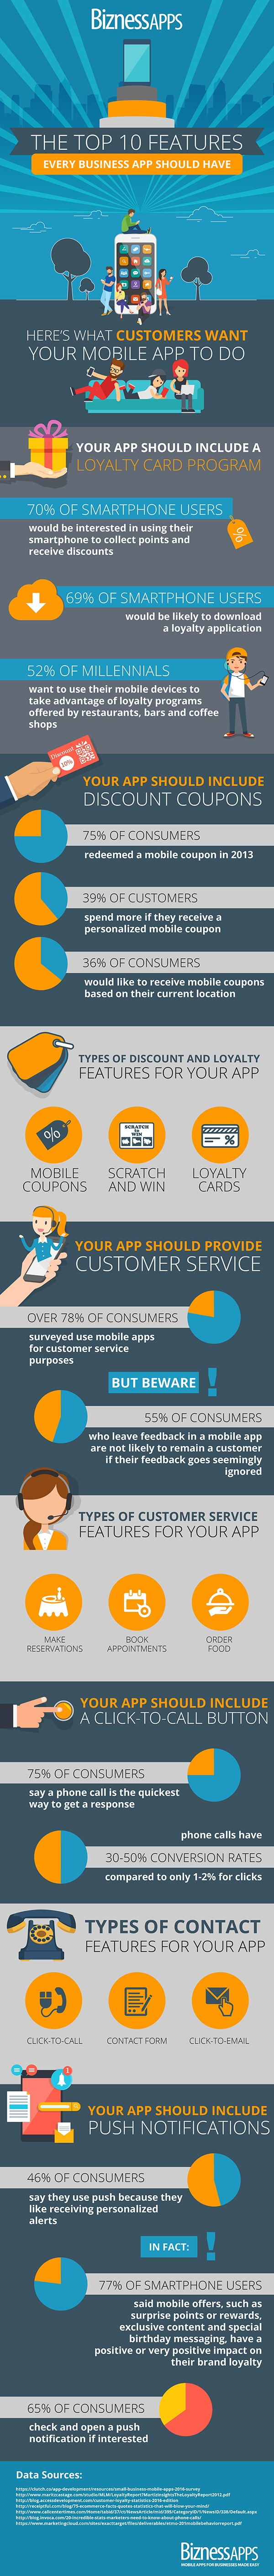 Mobile app features customers want